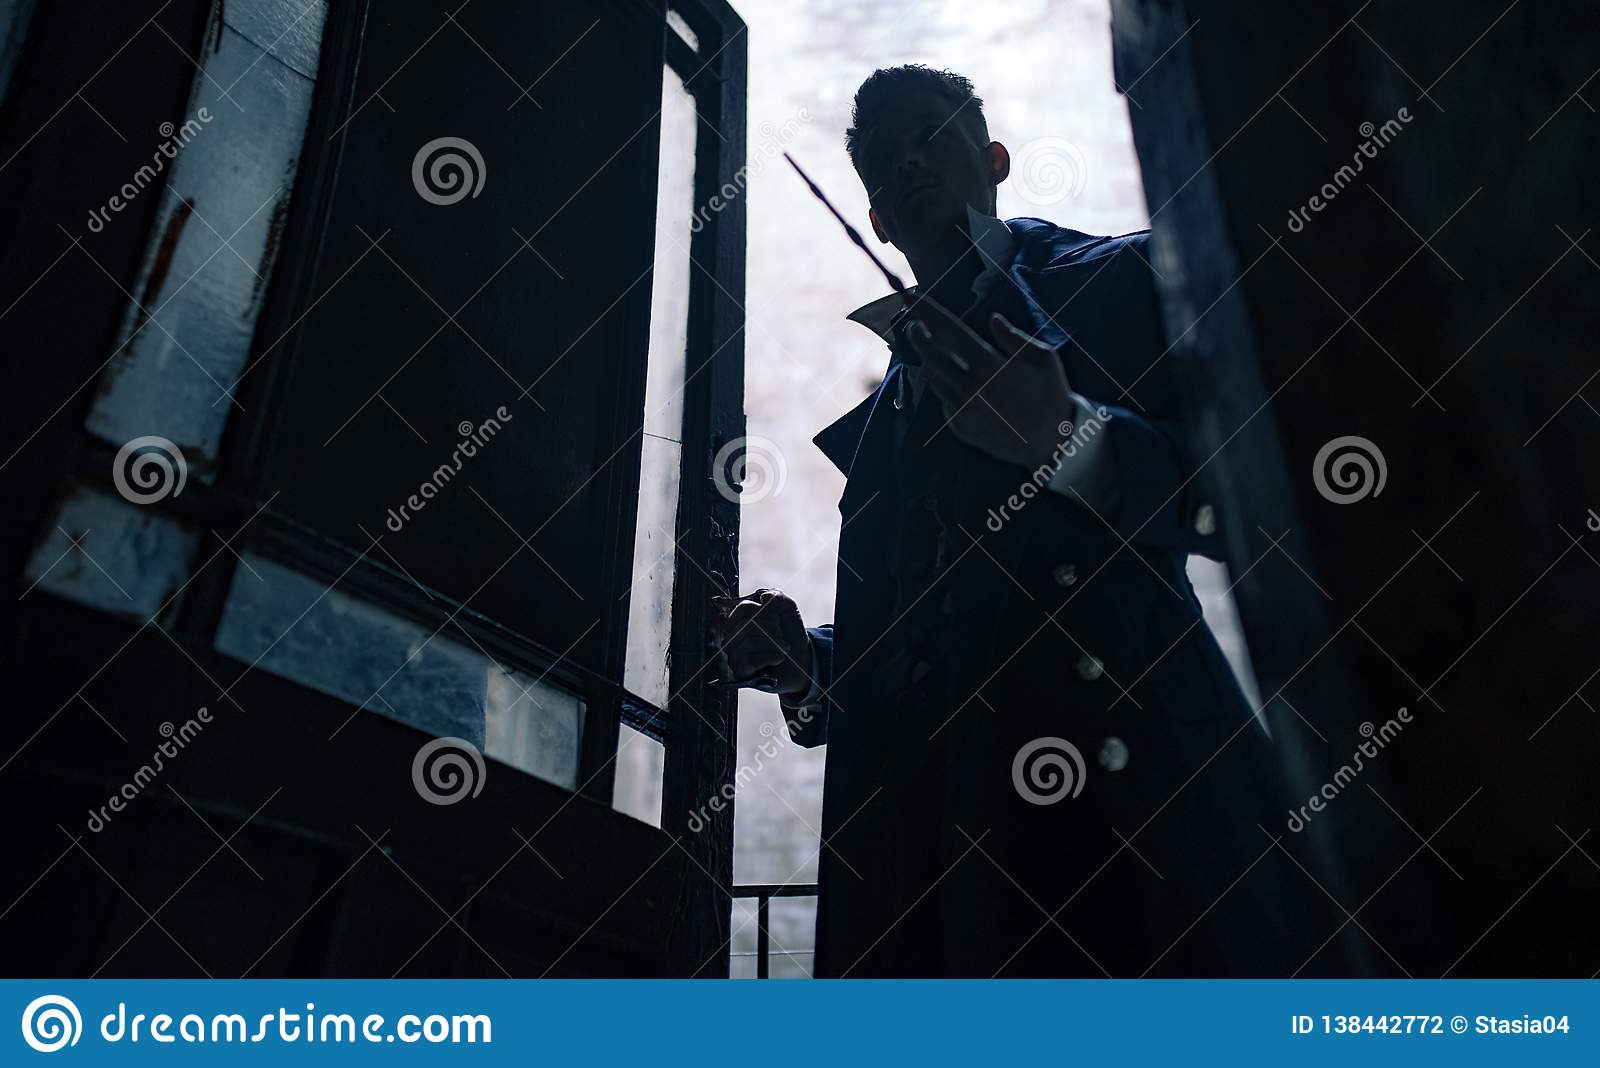 Silhouette of man in image of black magician with magic wand in his hand